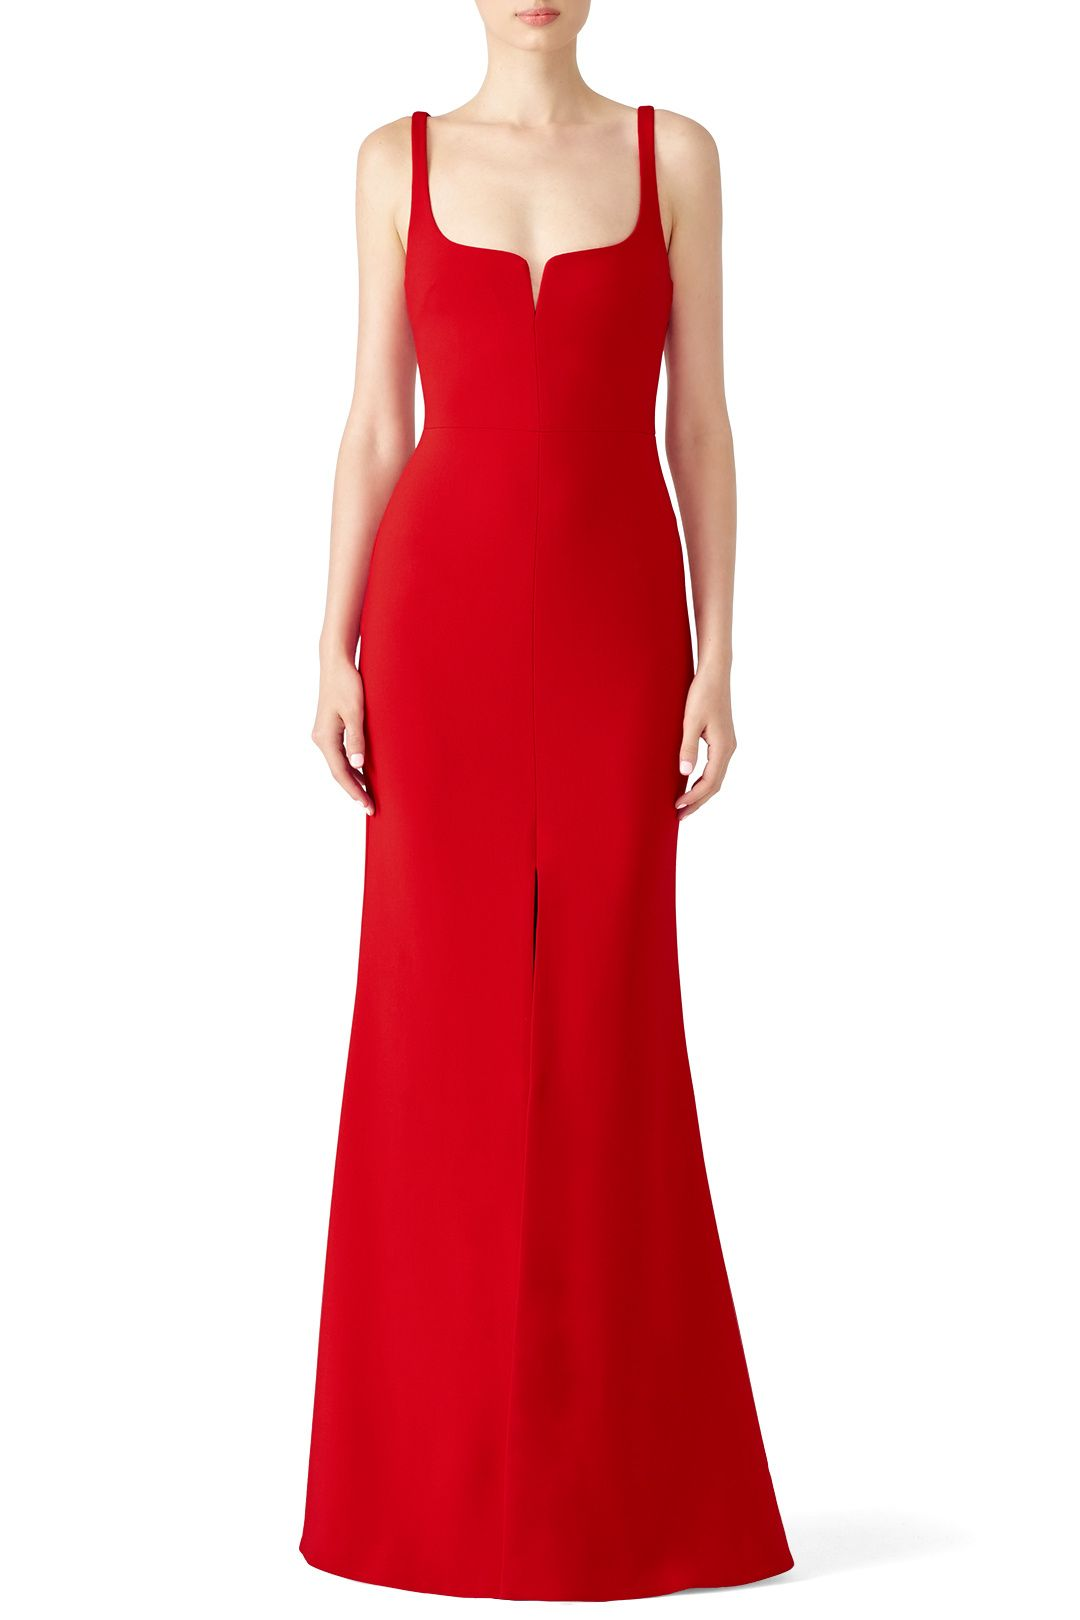 Rent Red Constance Gown By Likely For 70 Only At Rent The